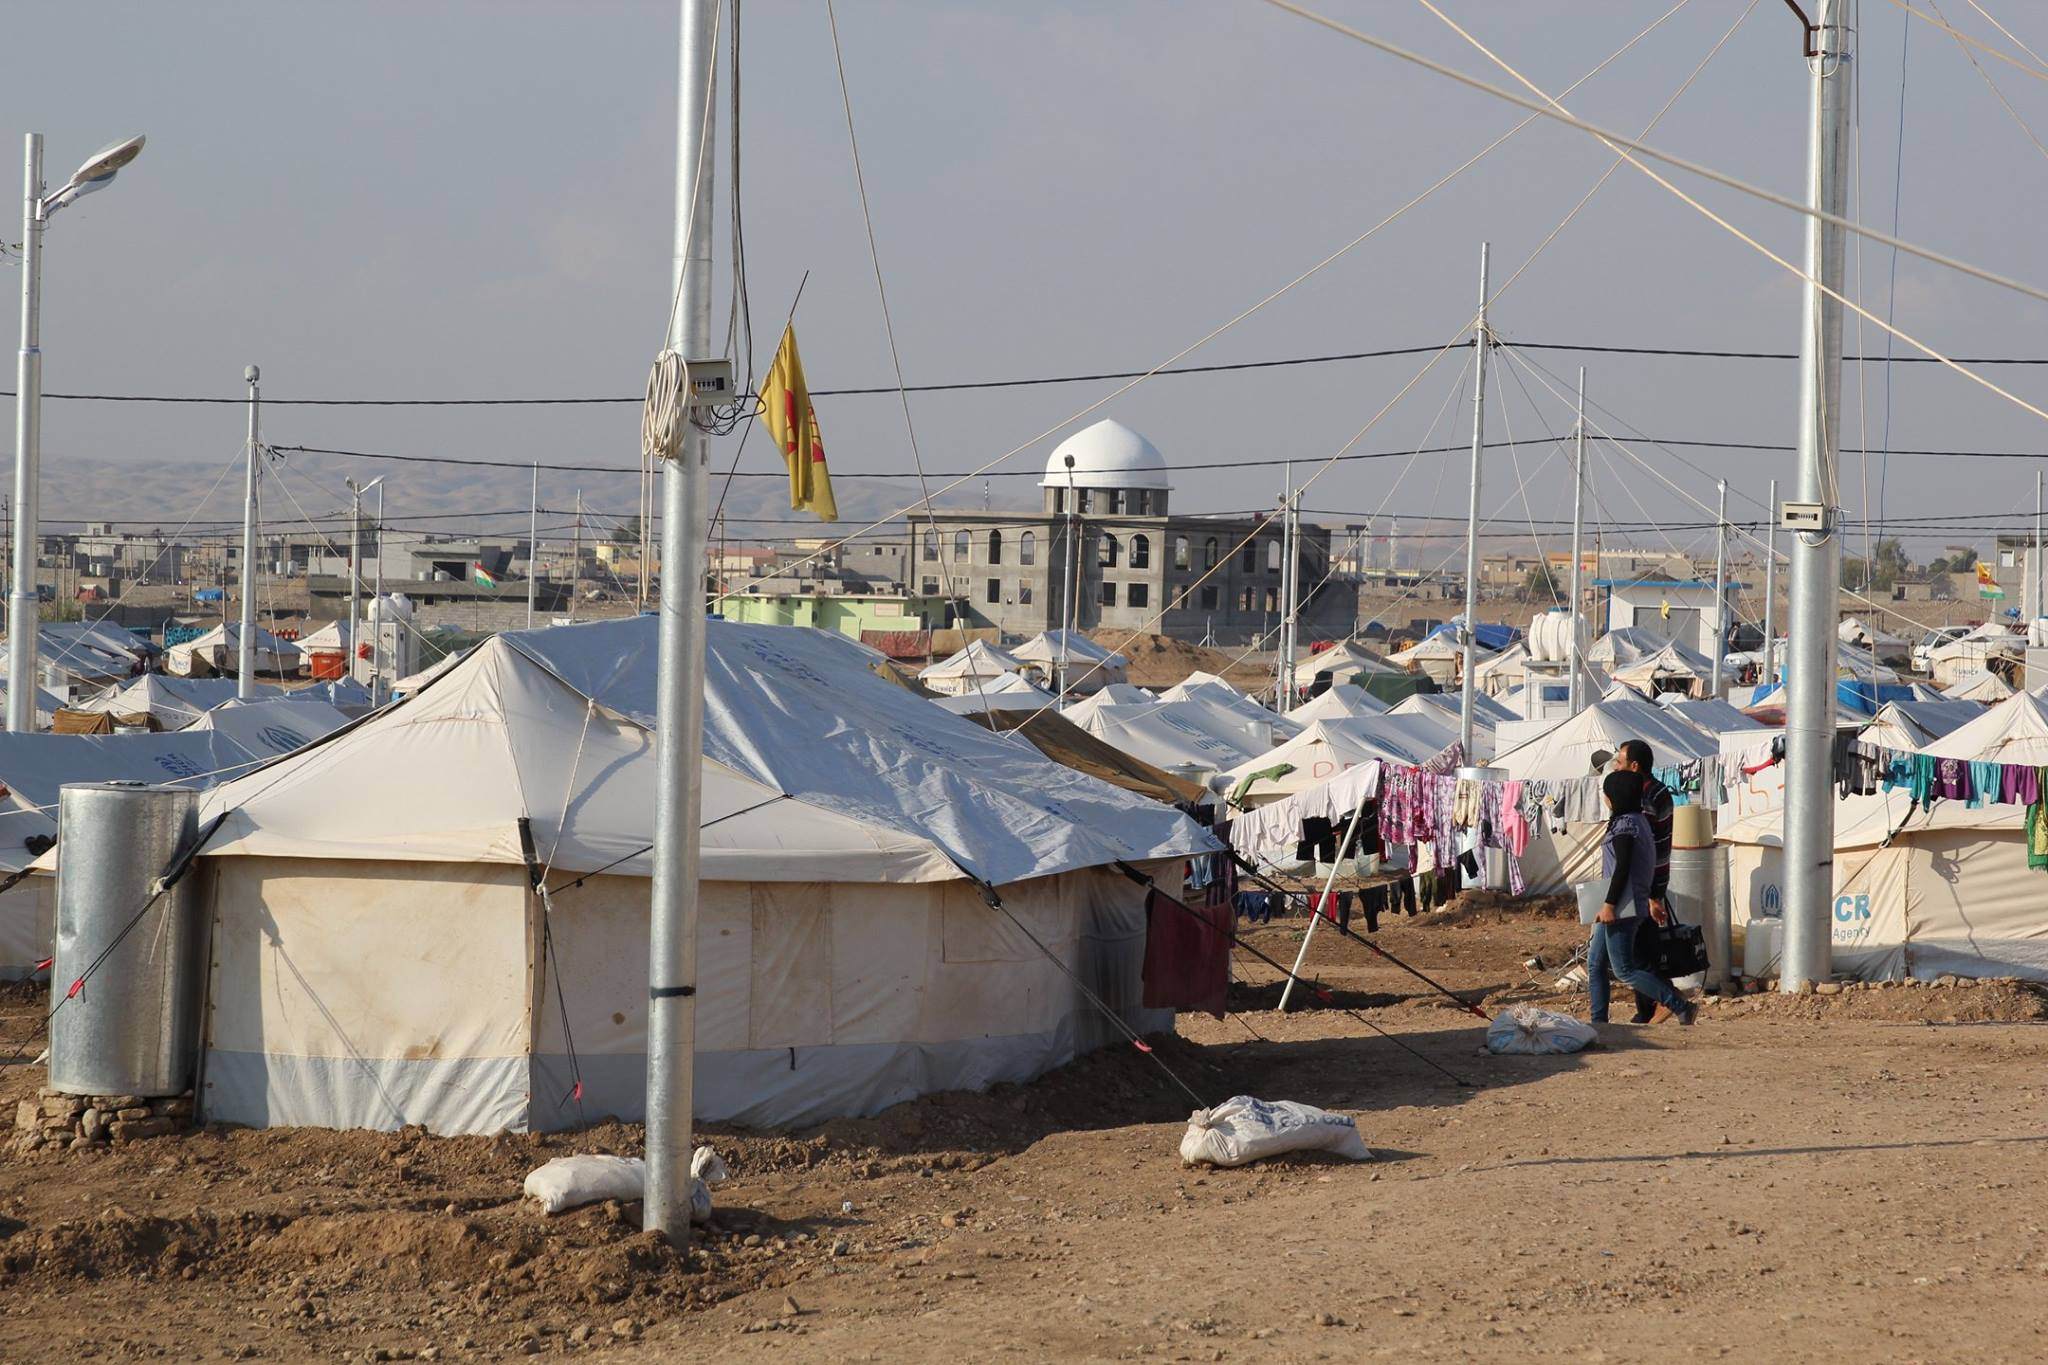 Global church called to help Syrian refugees